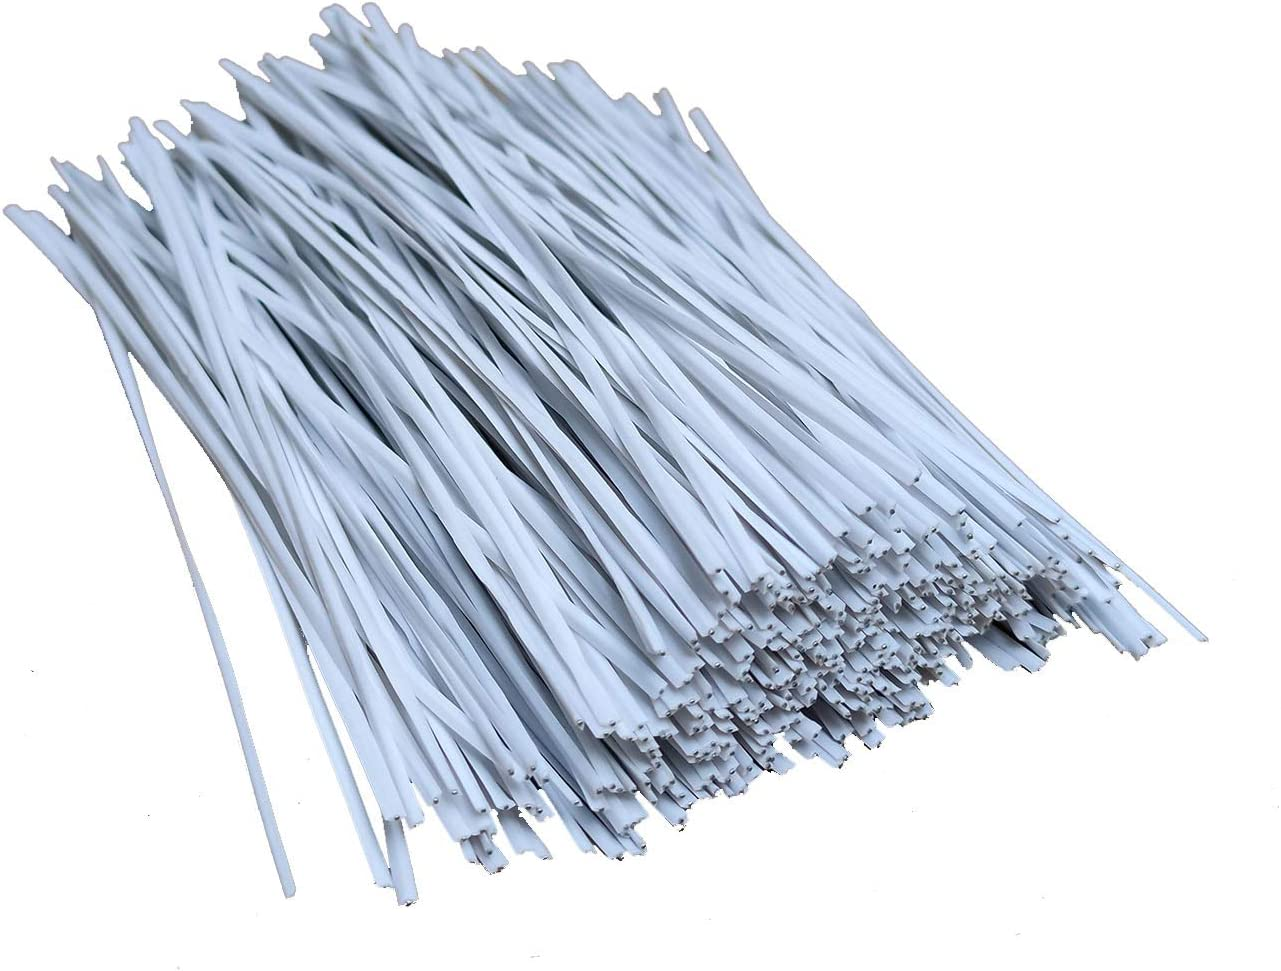 HHTHH White 1000pcs 4 inch Plastic Twist Ties with Rugged Metal Innercores for Bags Plant Garden Cable Ties (4in, White)